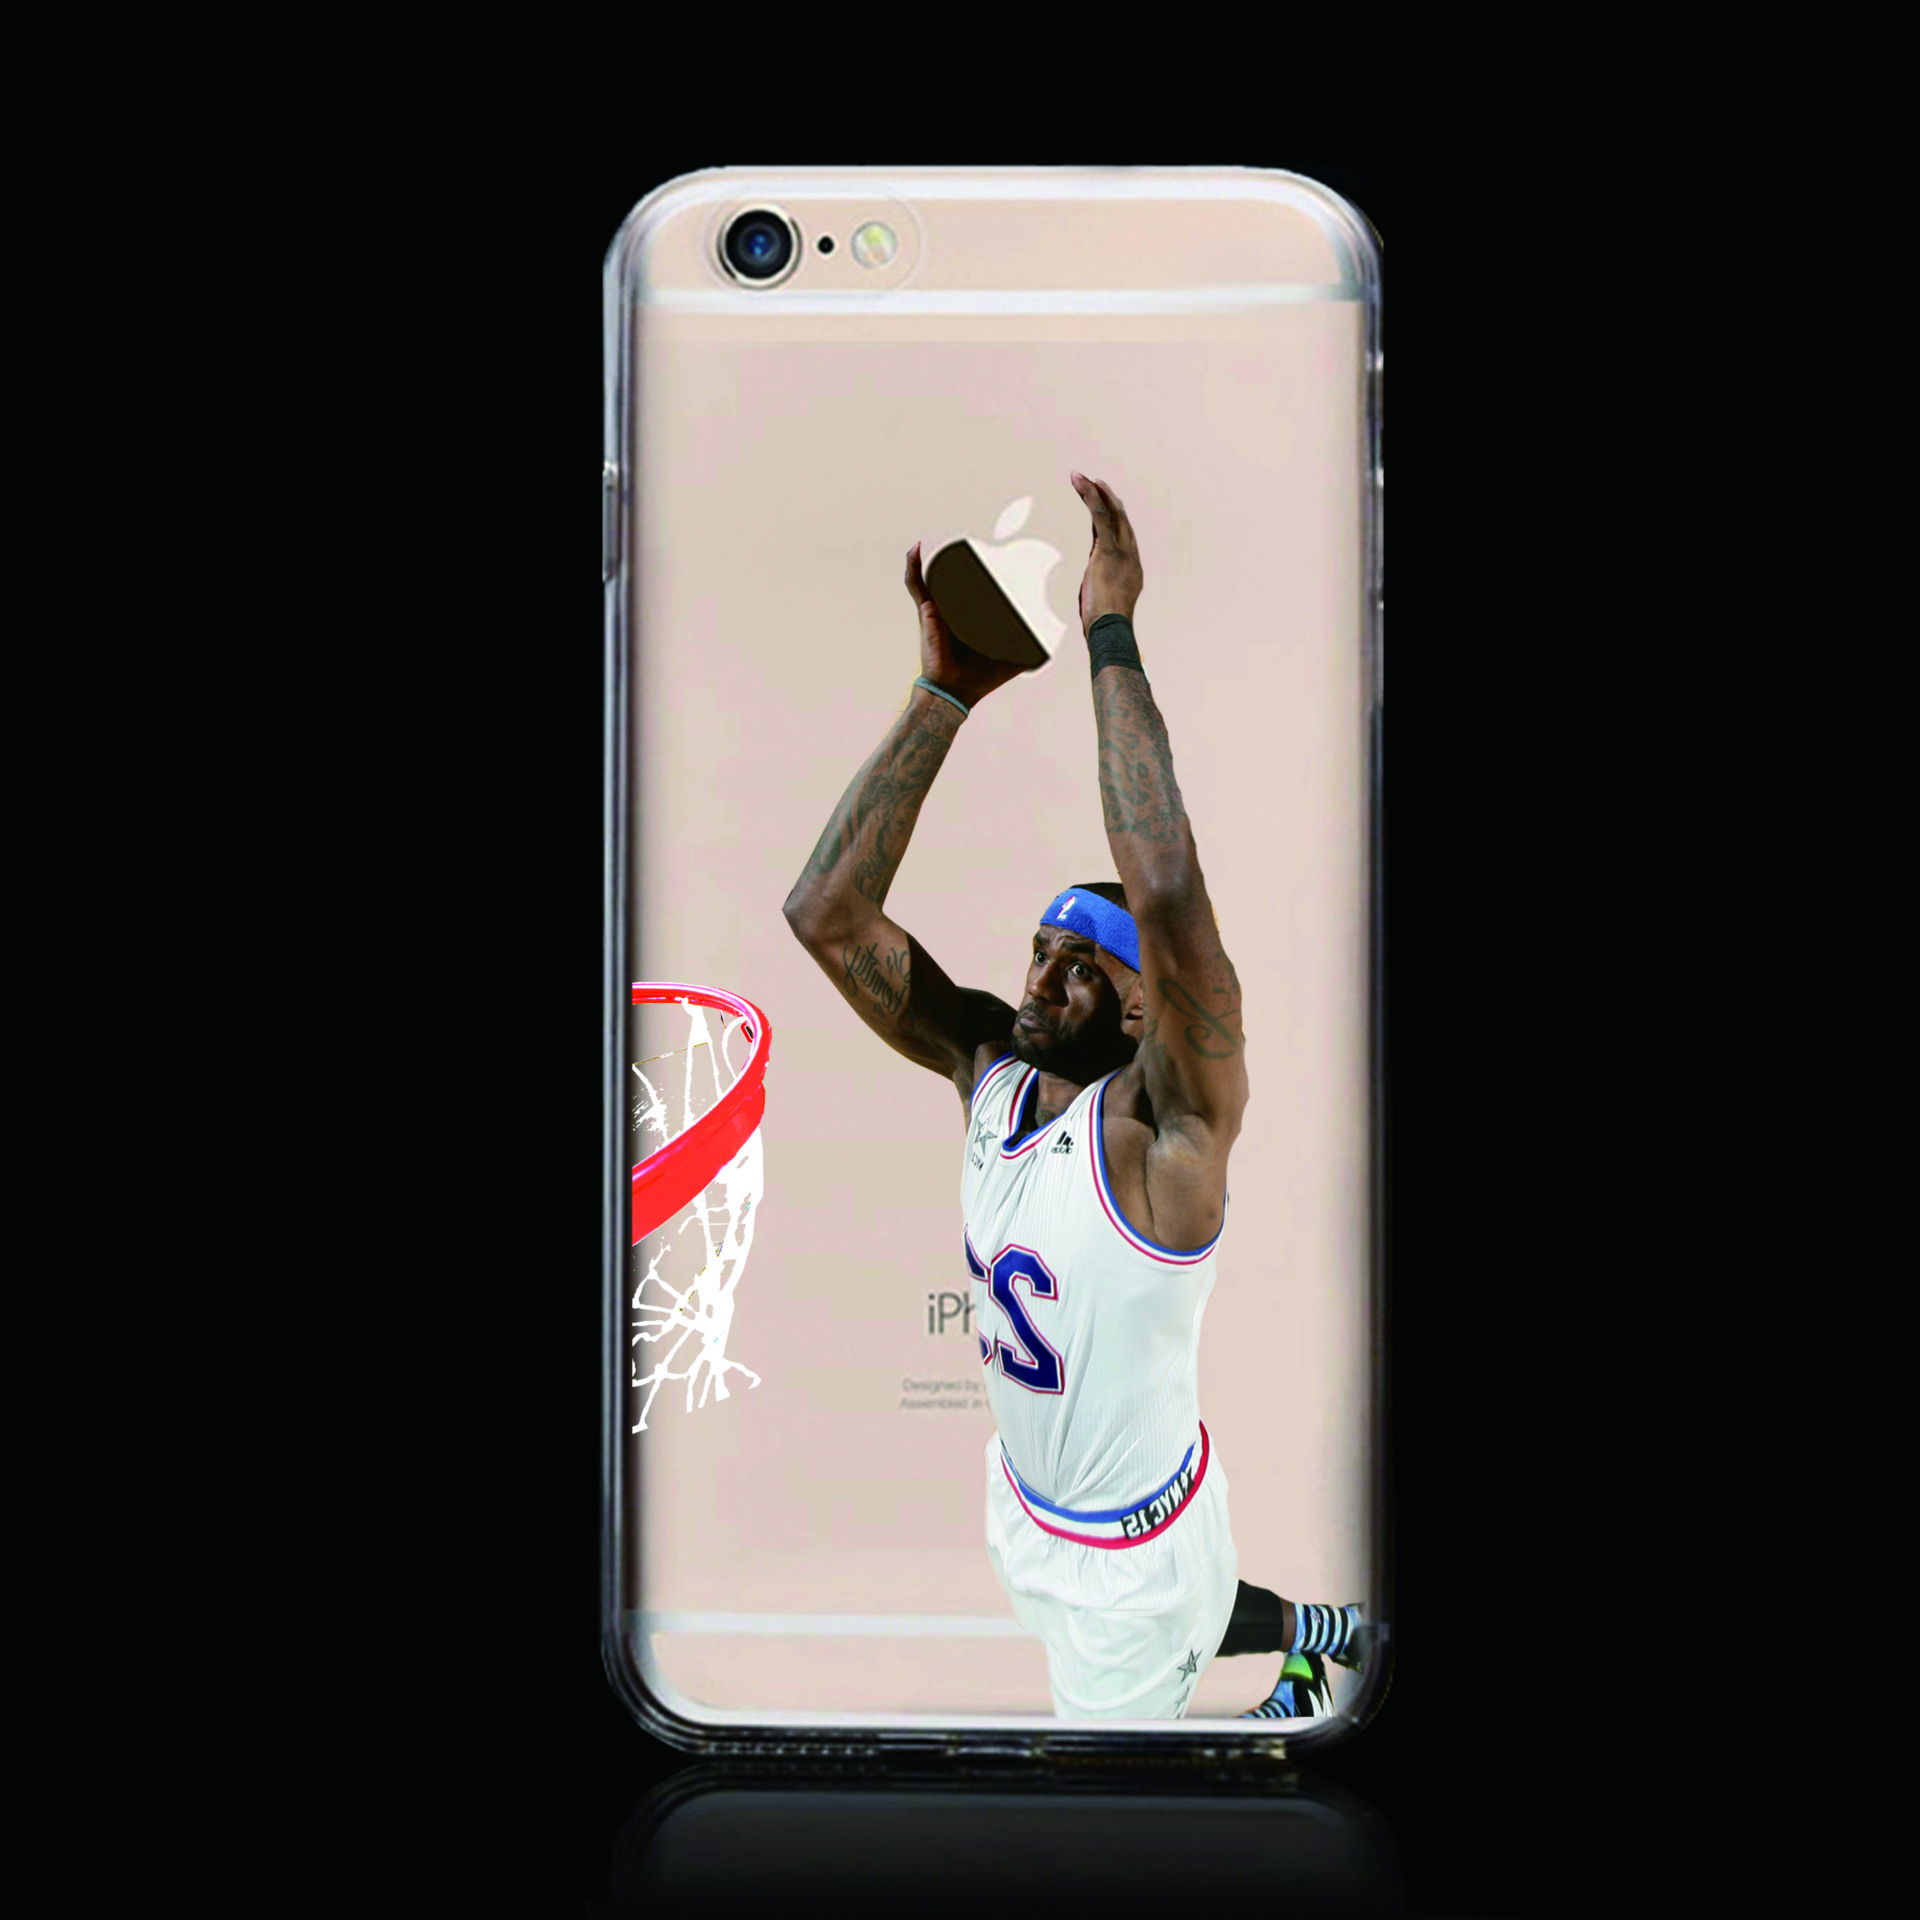 lebron dunking apple logo case. online shop soft case for iphone 4s 5 5s 5c se 6 6s 7 plus clear nba basketball players lebron james stars curry kobe tpu shell cap new cool | aliexpress dunking apple logo